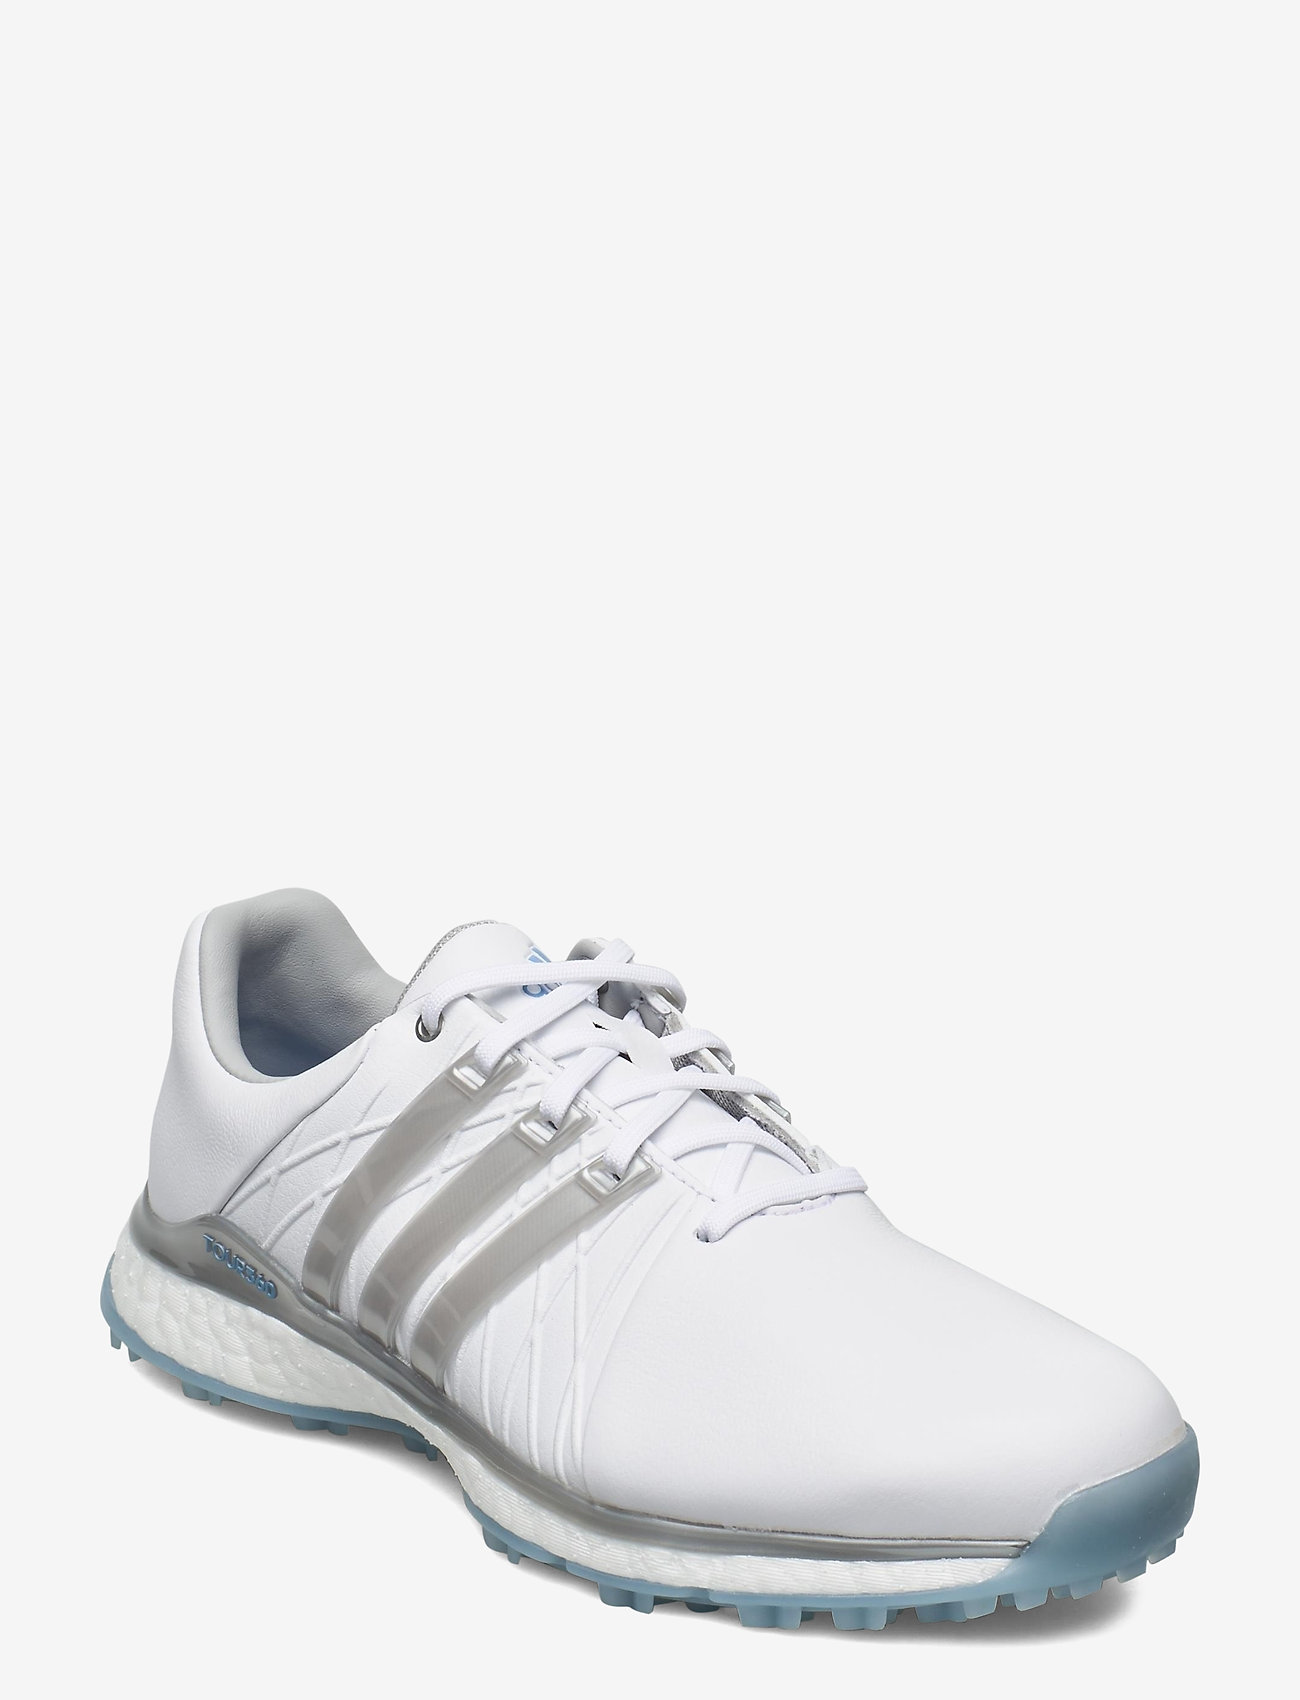 adidas Golf - W TOUR360 XT-SL - golf shoes - ftwwht/silvmt/ltblue - 0